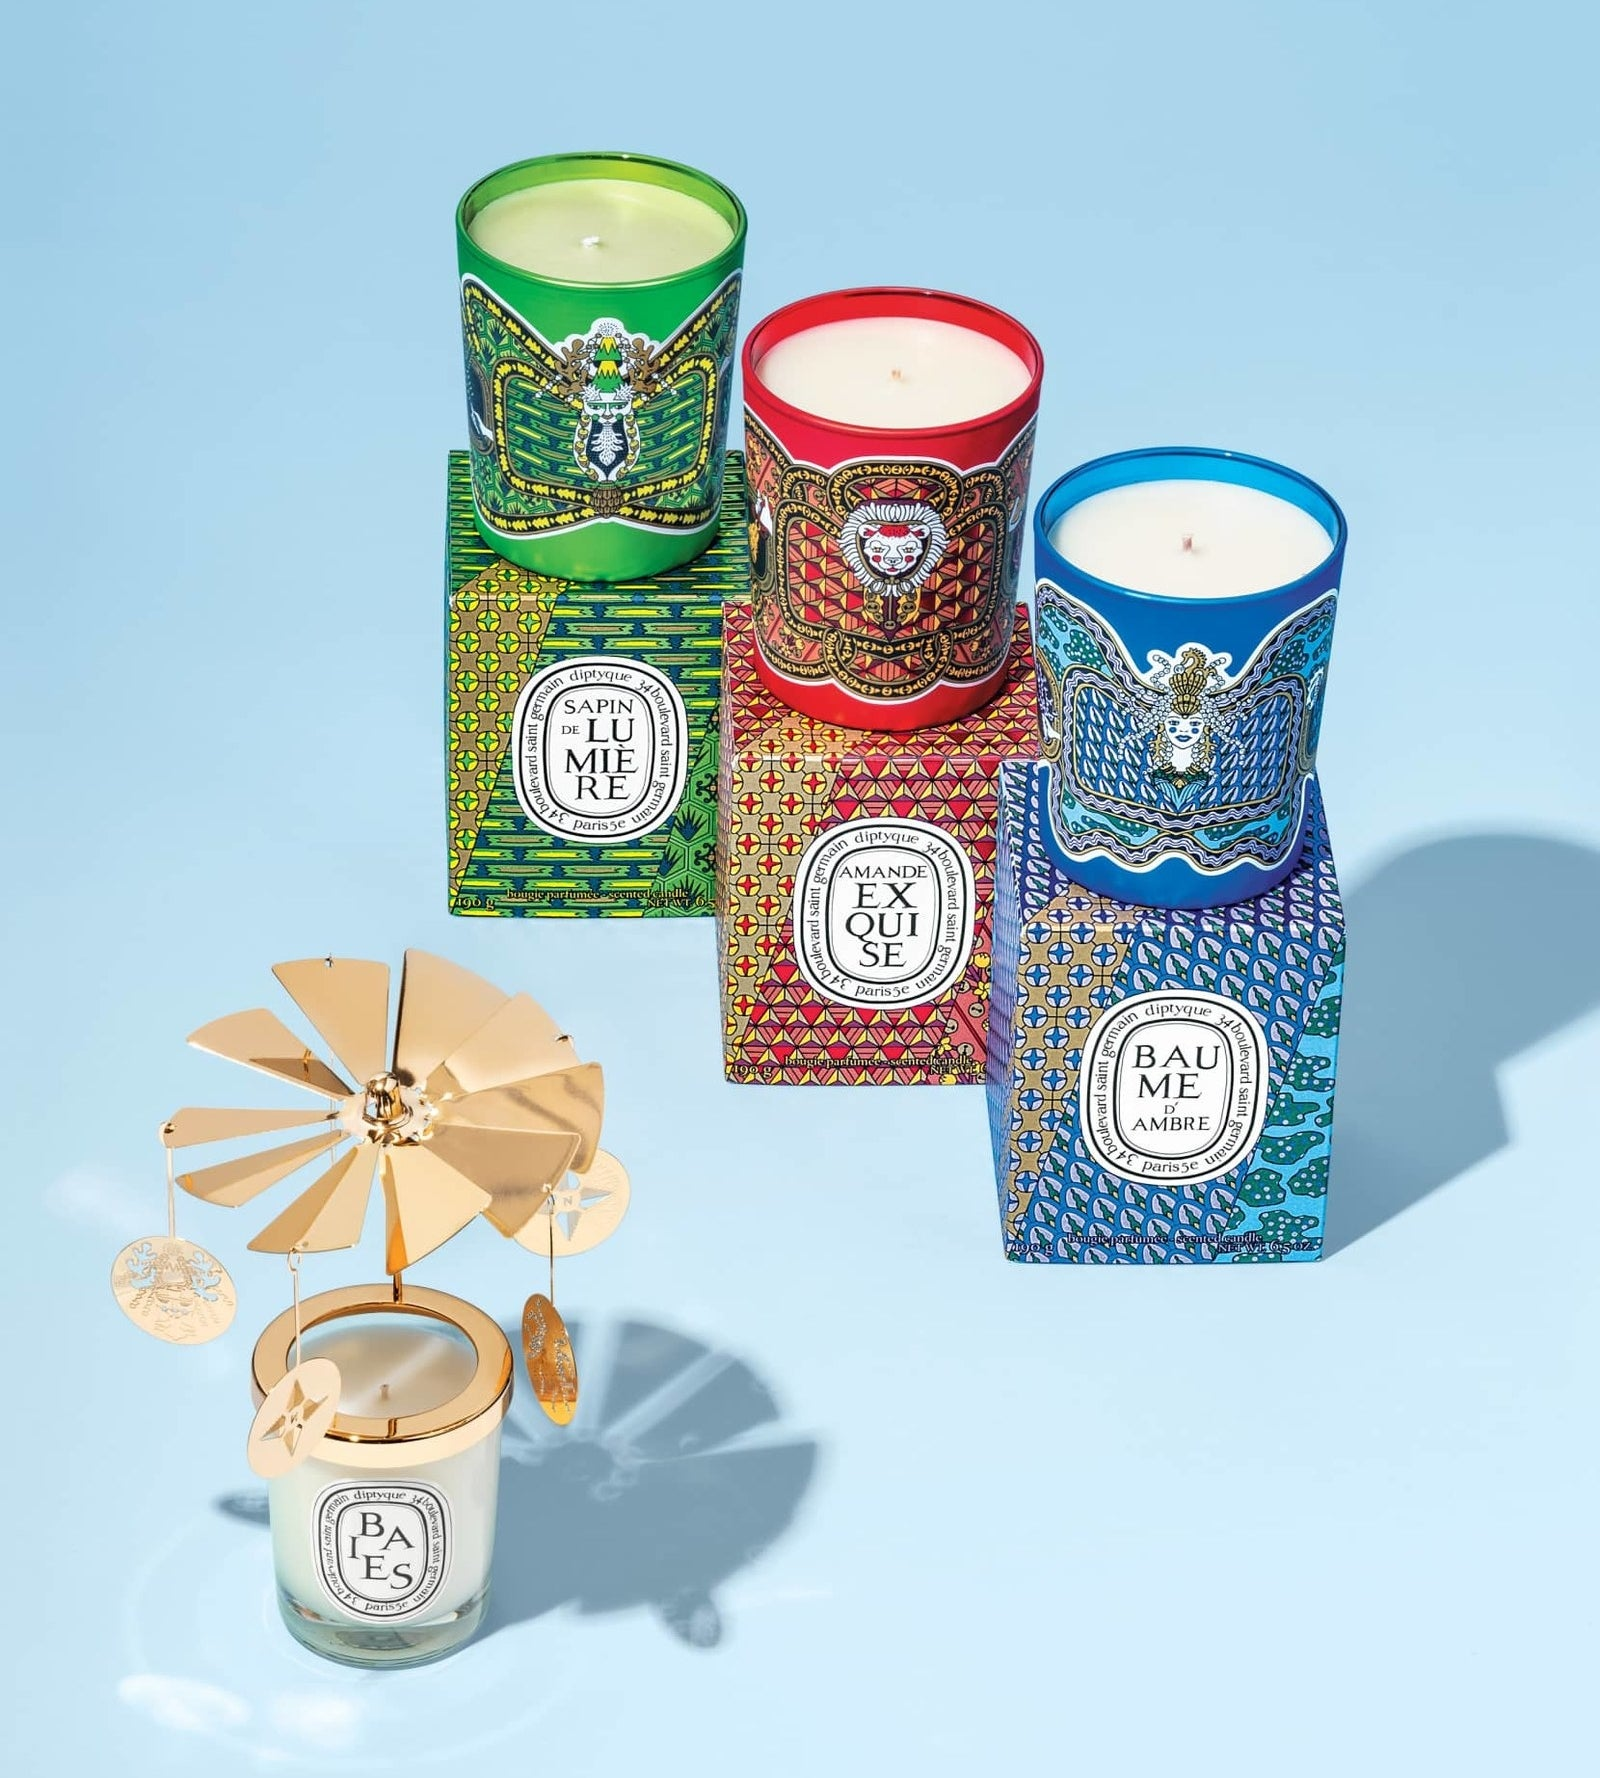 Seriously, give them a Diptyque candle and their eyes will roll back in their head from joy. Get them from Nordstrom for $72 each: Sapin de Lumière (green; scent of fir and cedar), Amand Exquise (red; scent of almond and tonka bean), and Baume d'Ambre (blue; scent of vanilla, benzoin, and lavender)Also available as a votive set.